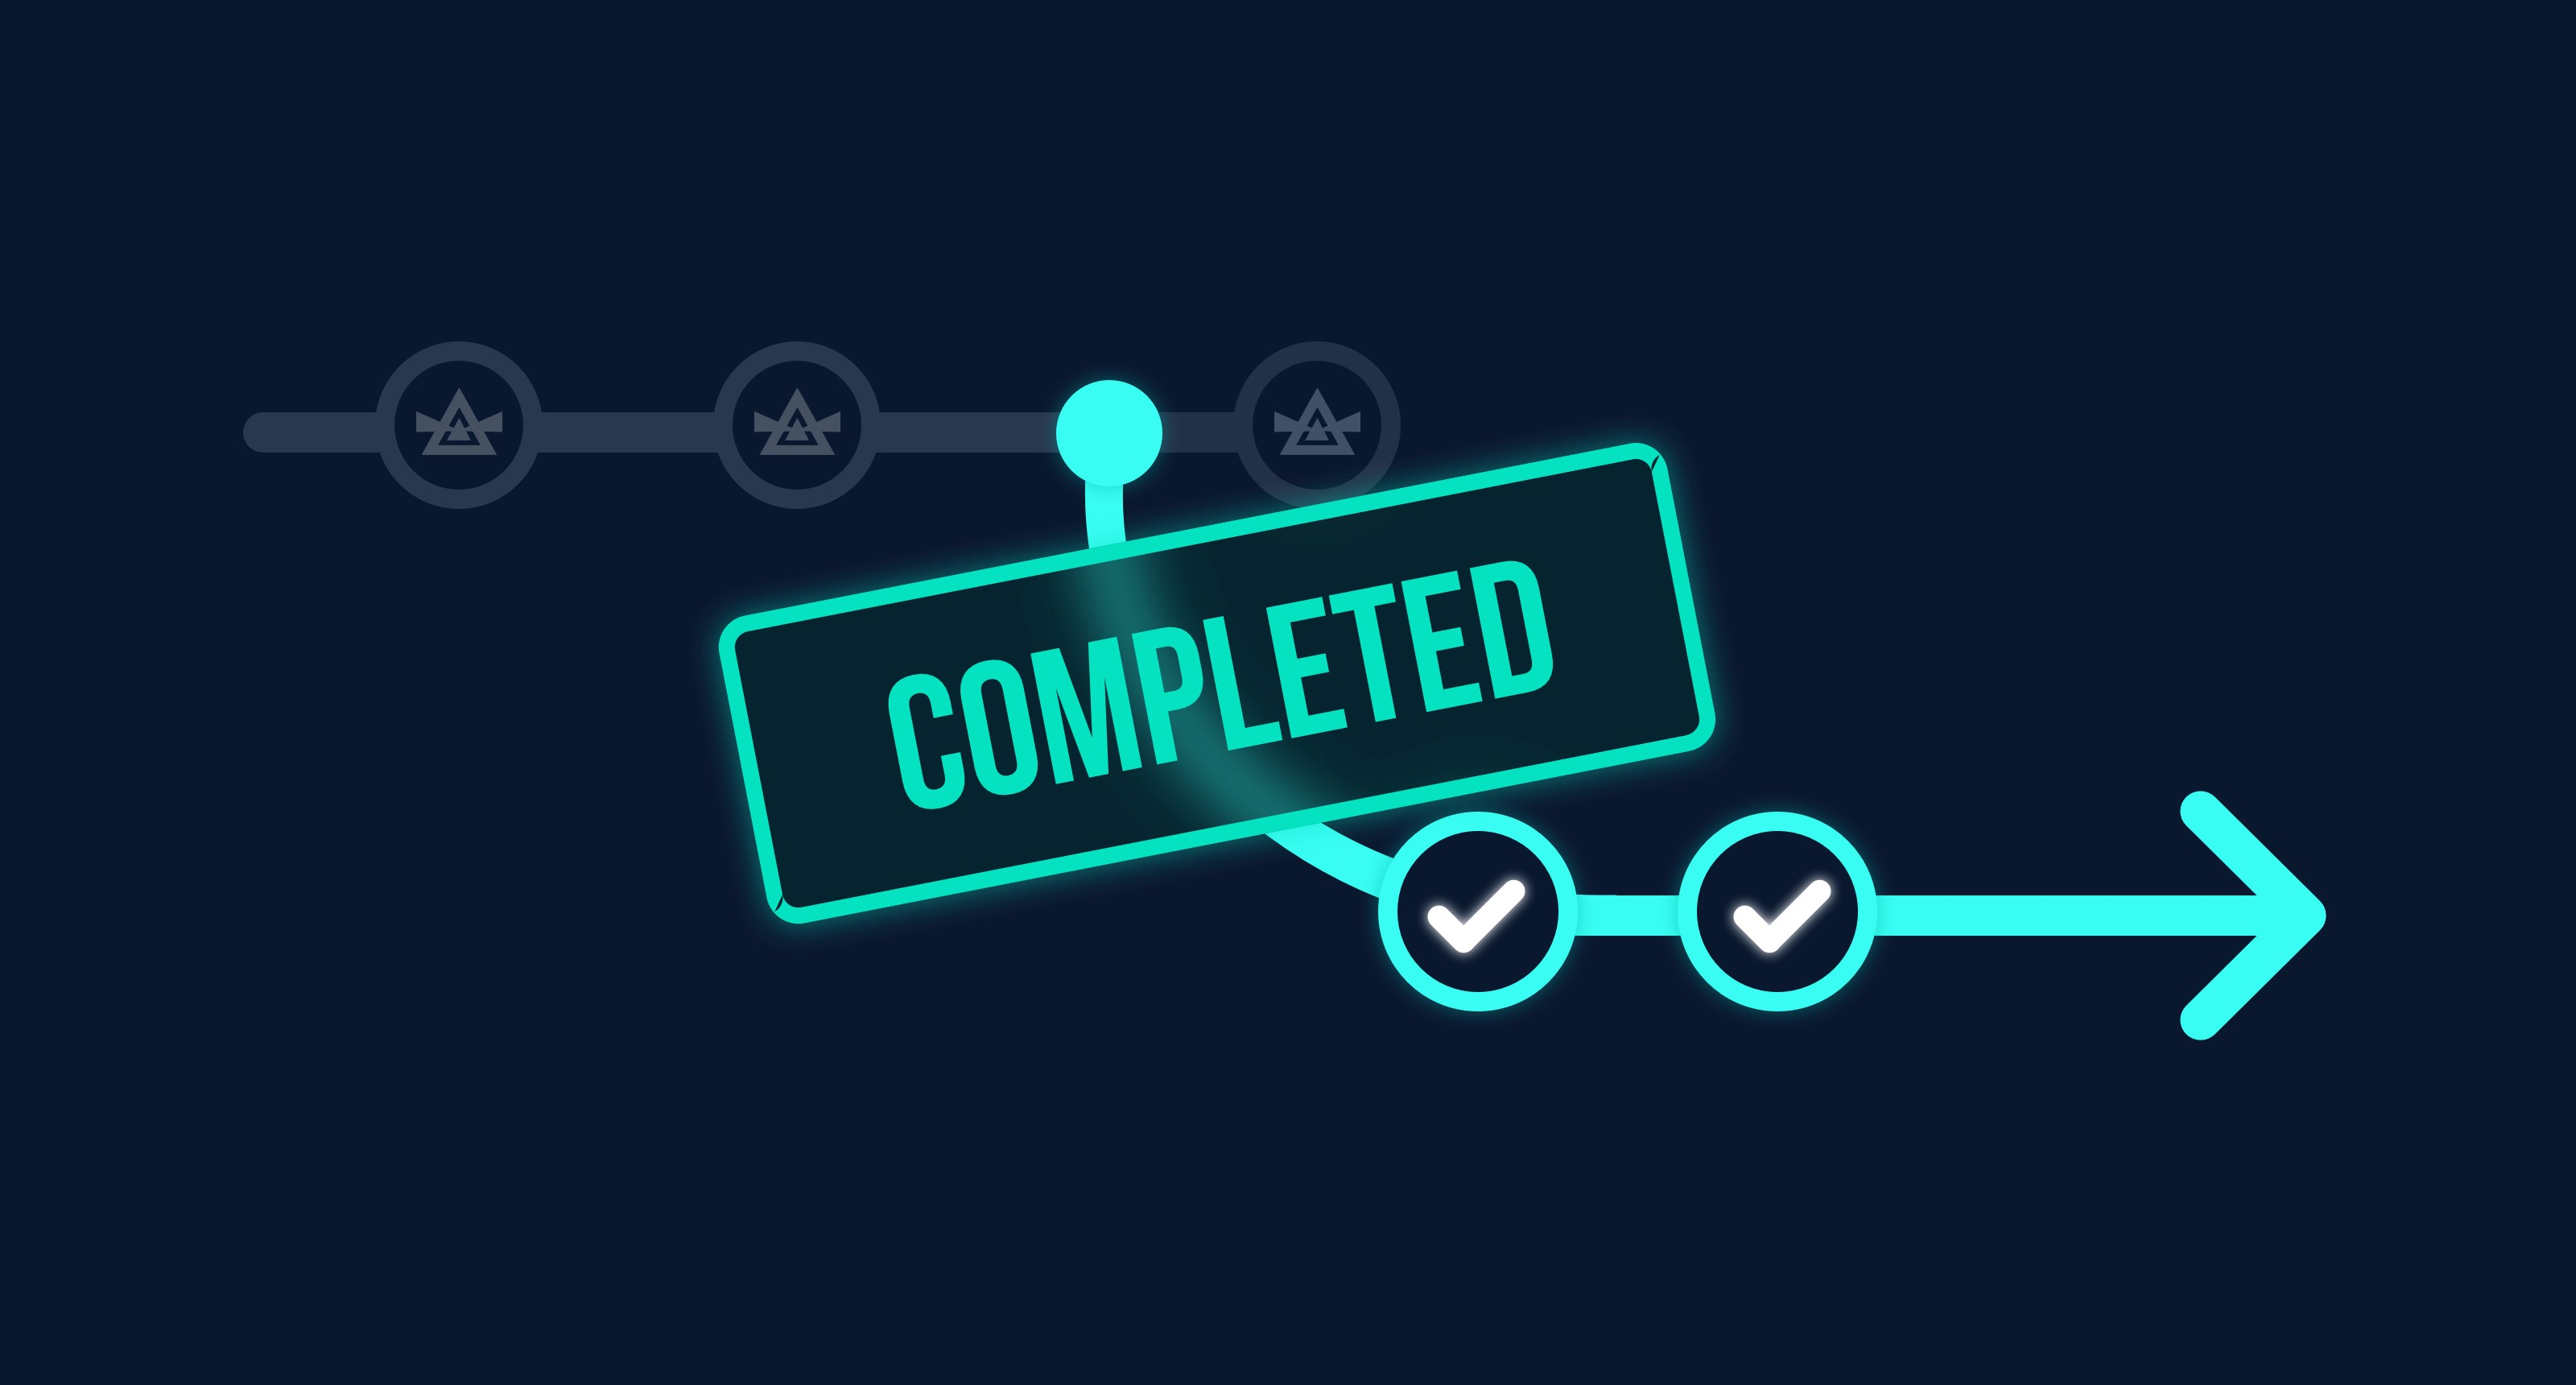 Beam Hard Fork is completed